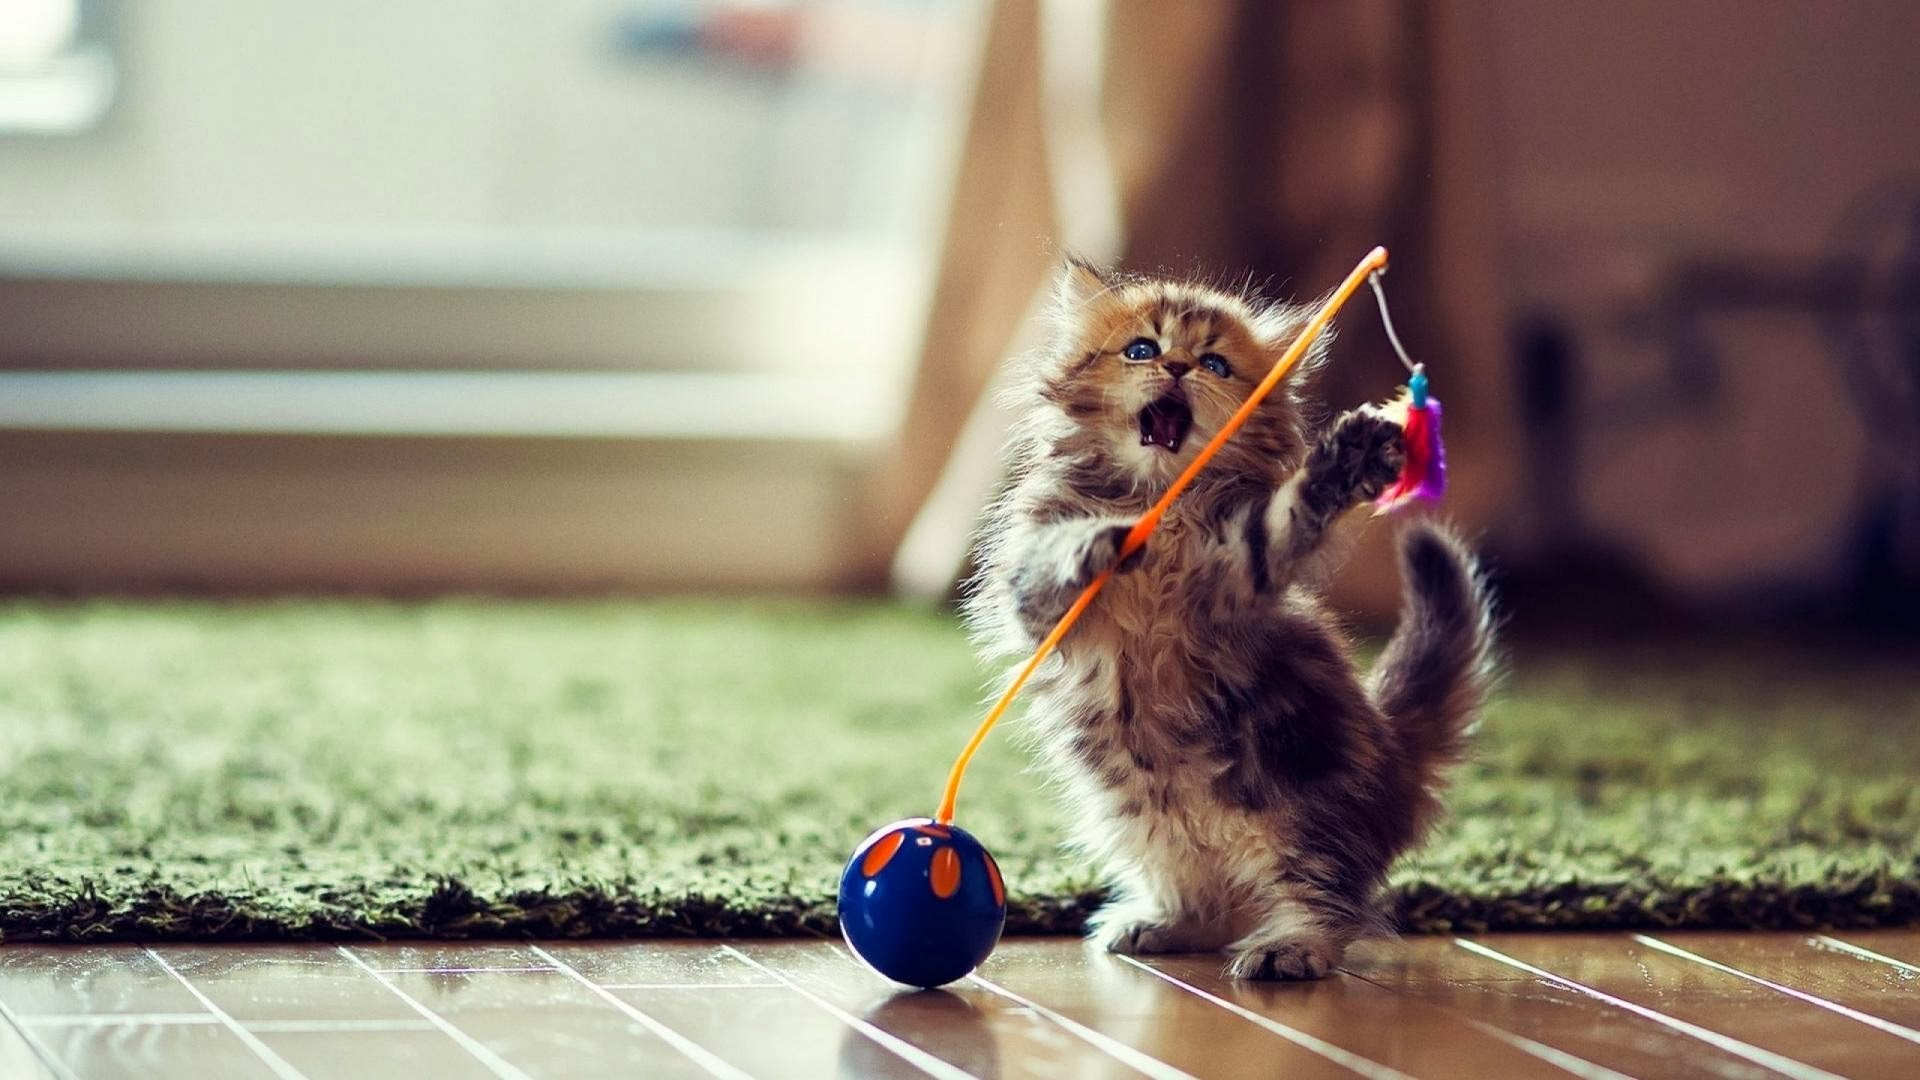 1920x1080 Funny Cute Cat Playing Wallpaper Desktop Wallpaper